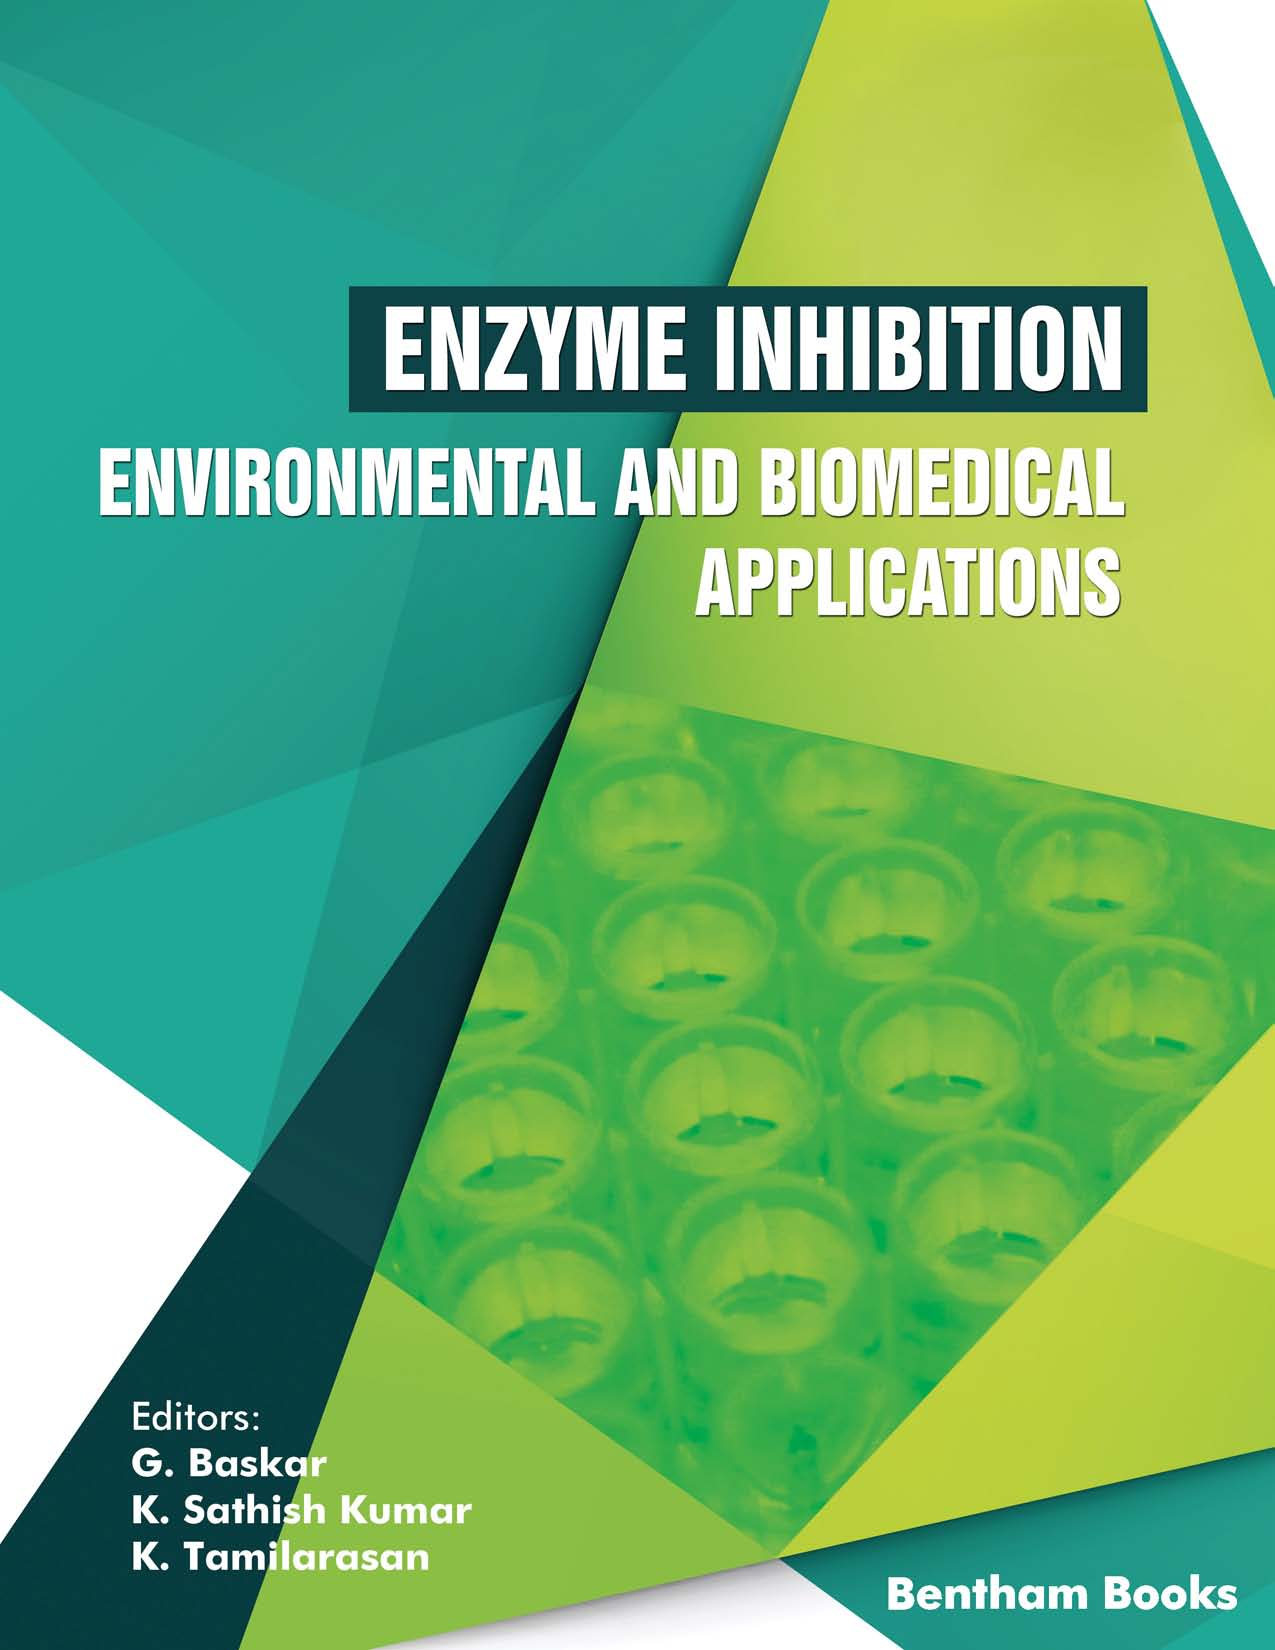 Enzyme Inhibition - Environmental and Biomedical Applications